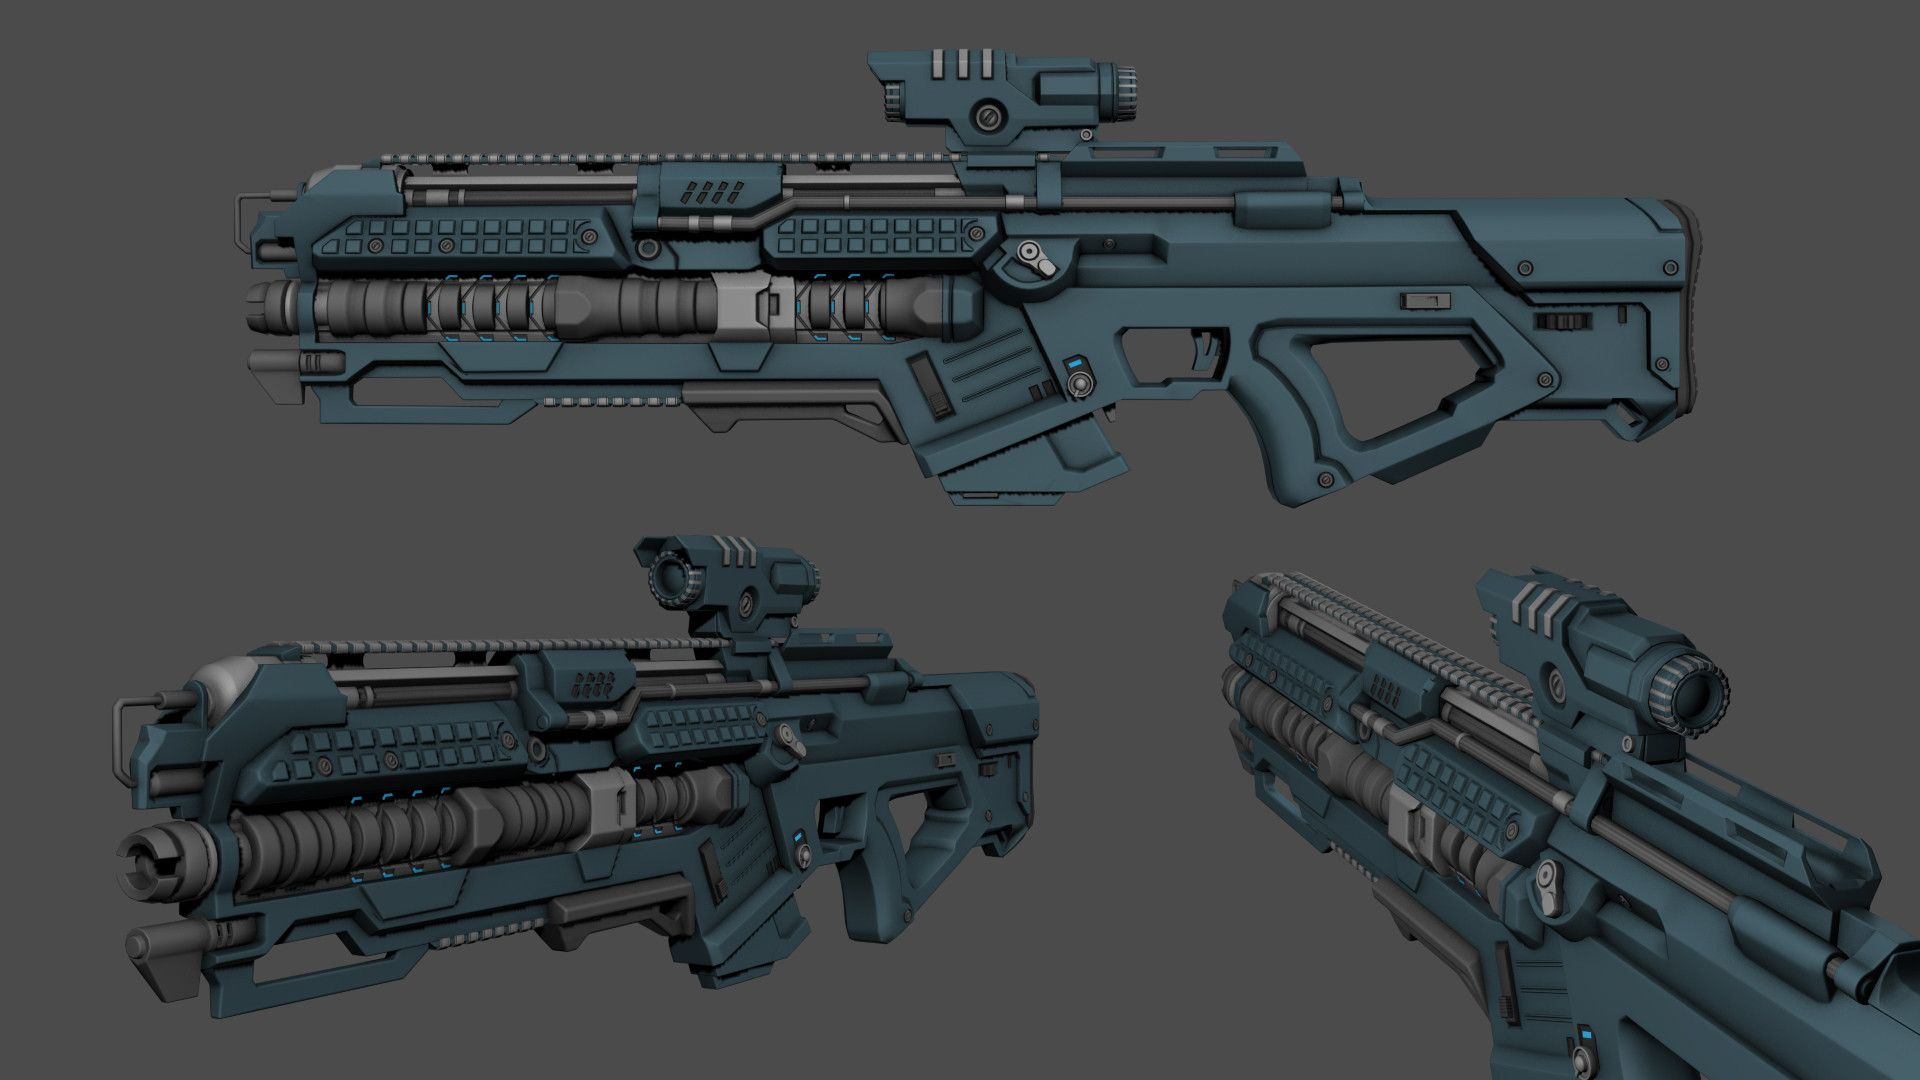 Pin On Weapon Design Research